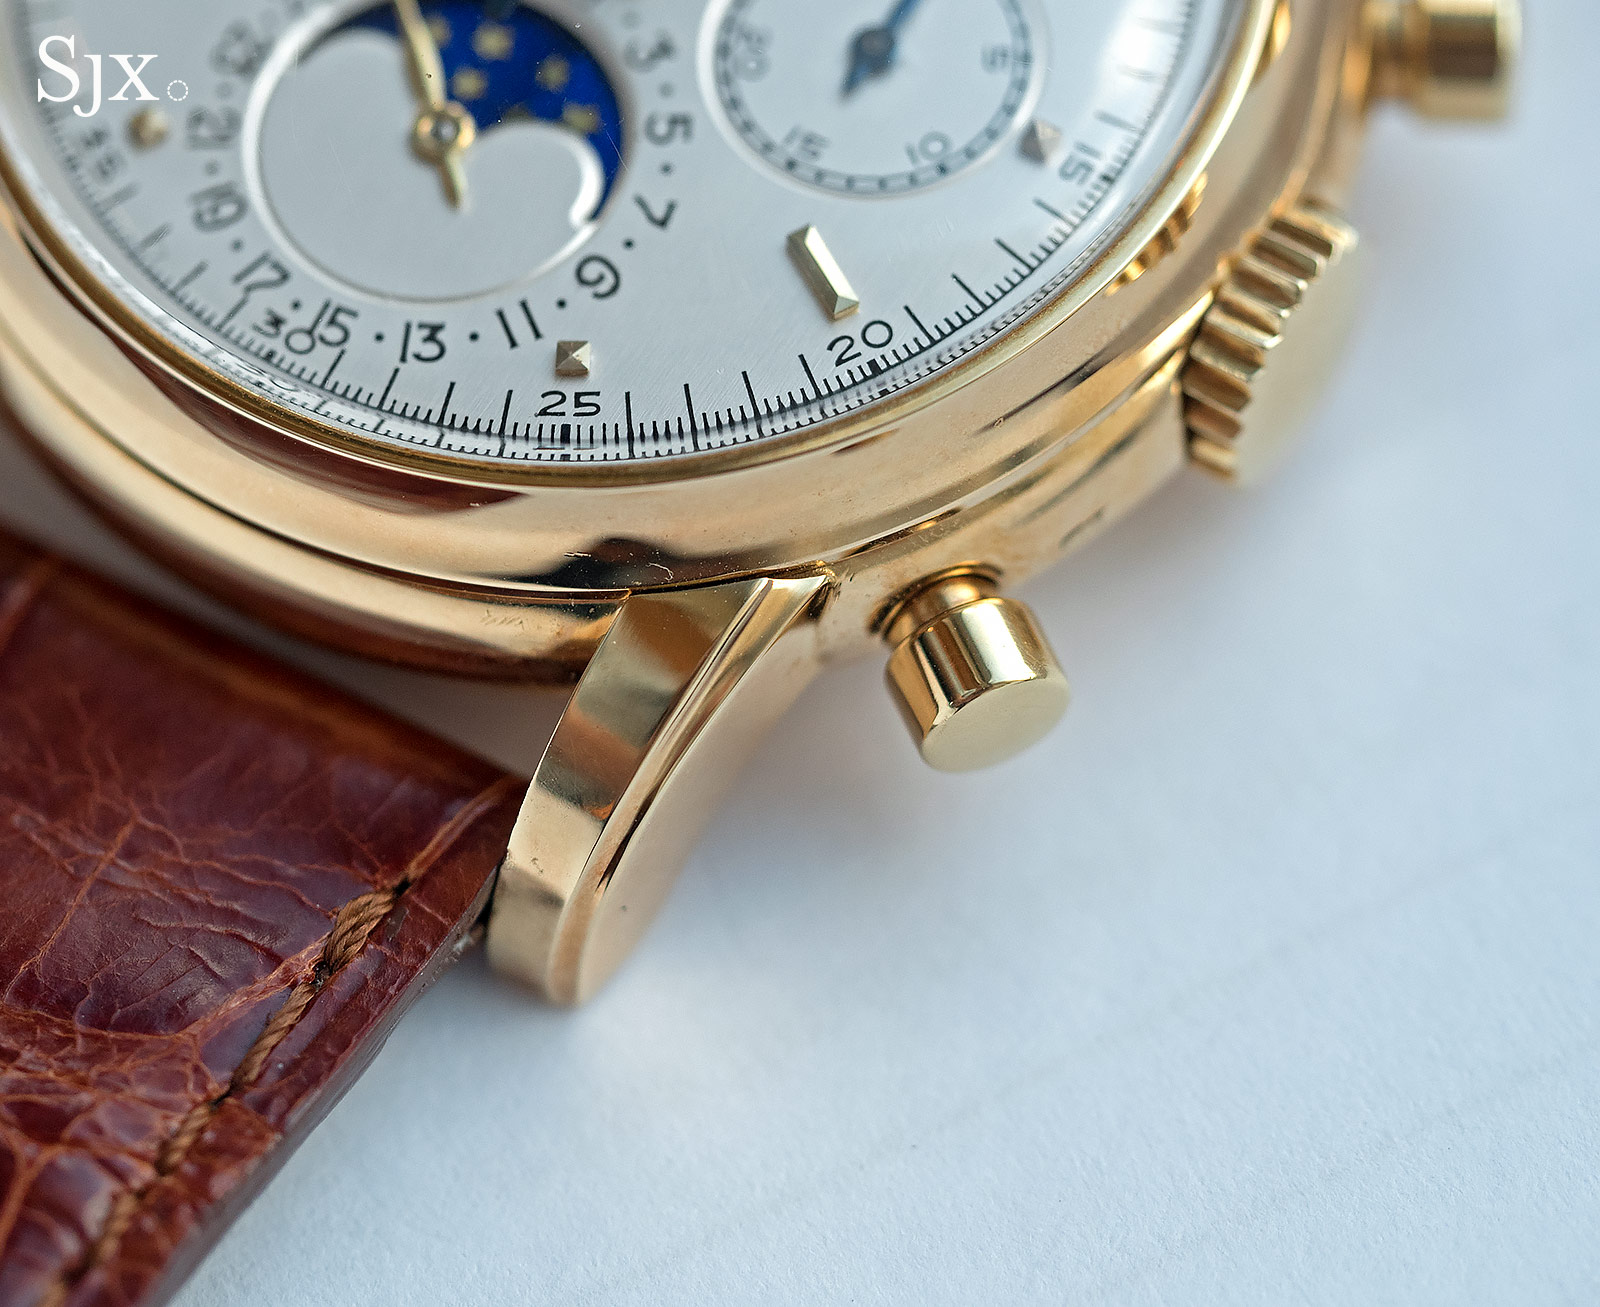 Patek Philippe 2499 third series yellow gold 5